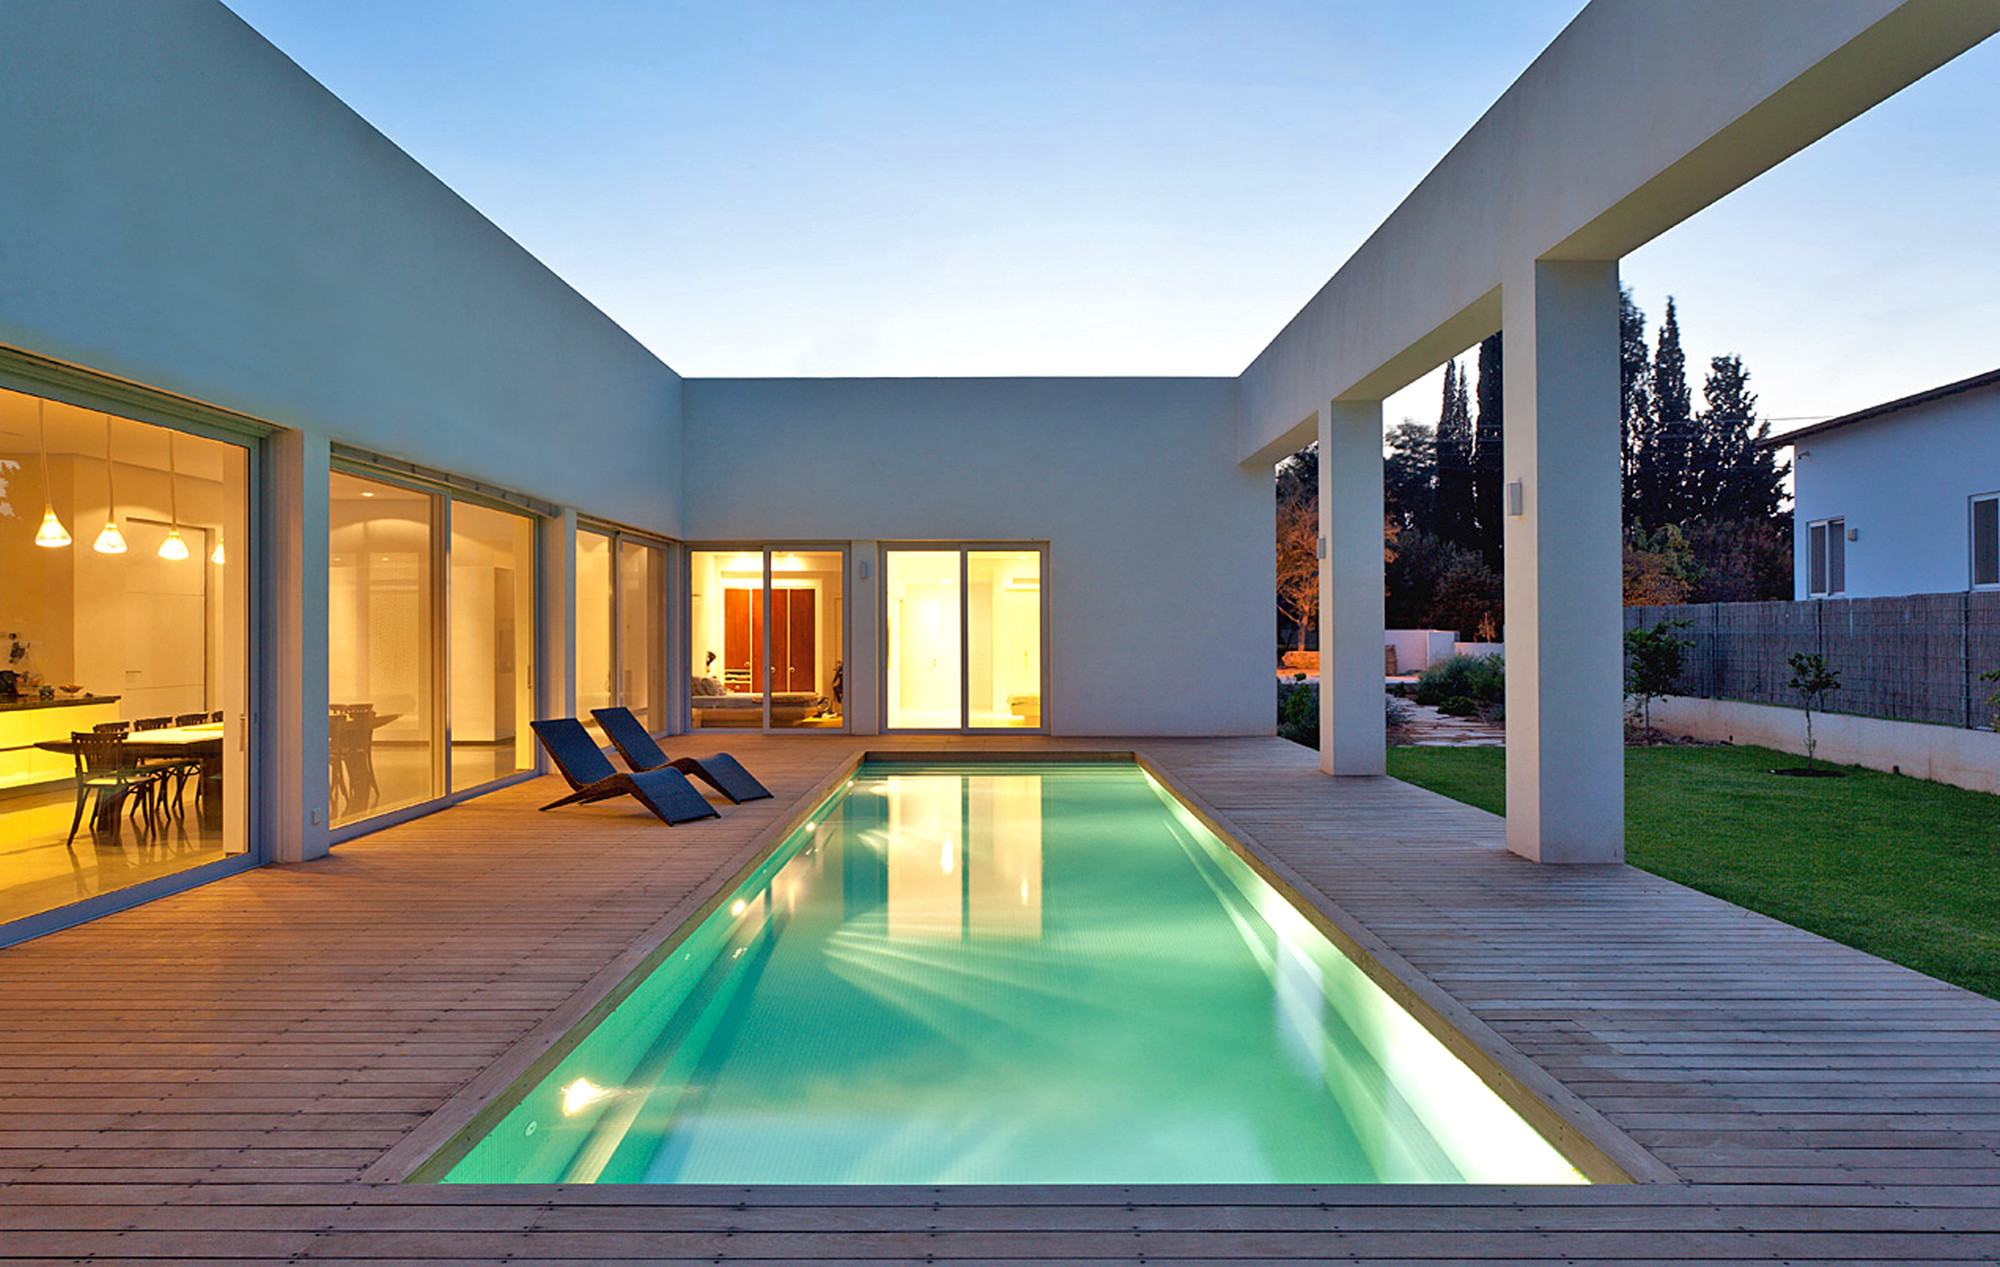 House in Talmei Elazar / Dan & Hila Israelevitz Architects ...